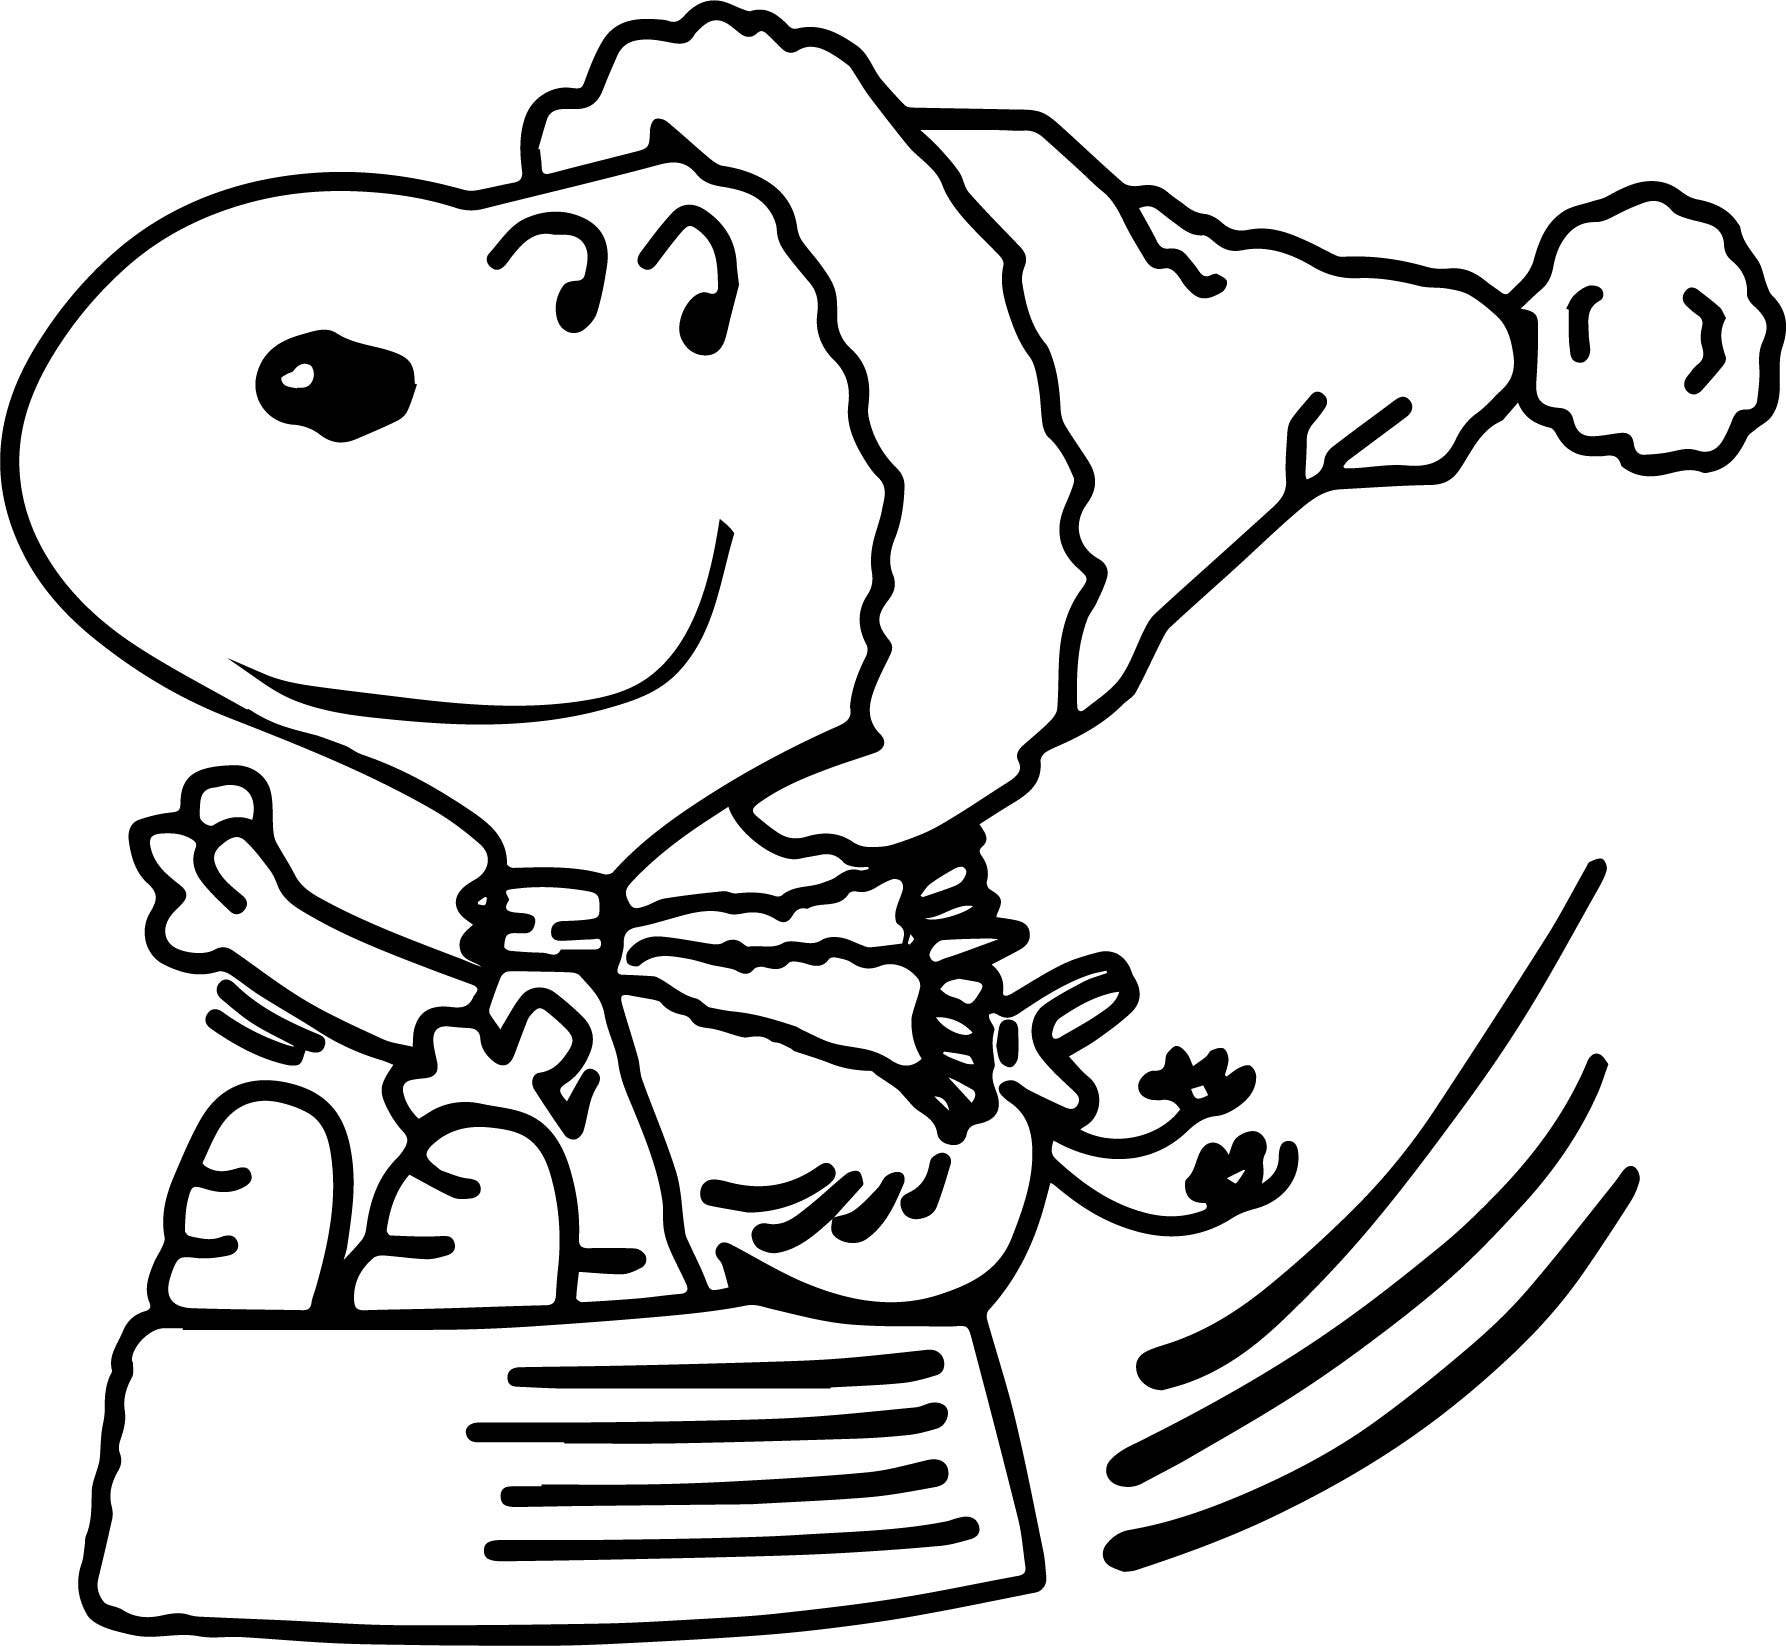 Snoopy christmas sleigh coloring page for Snoopy coloring page